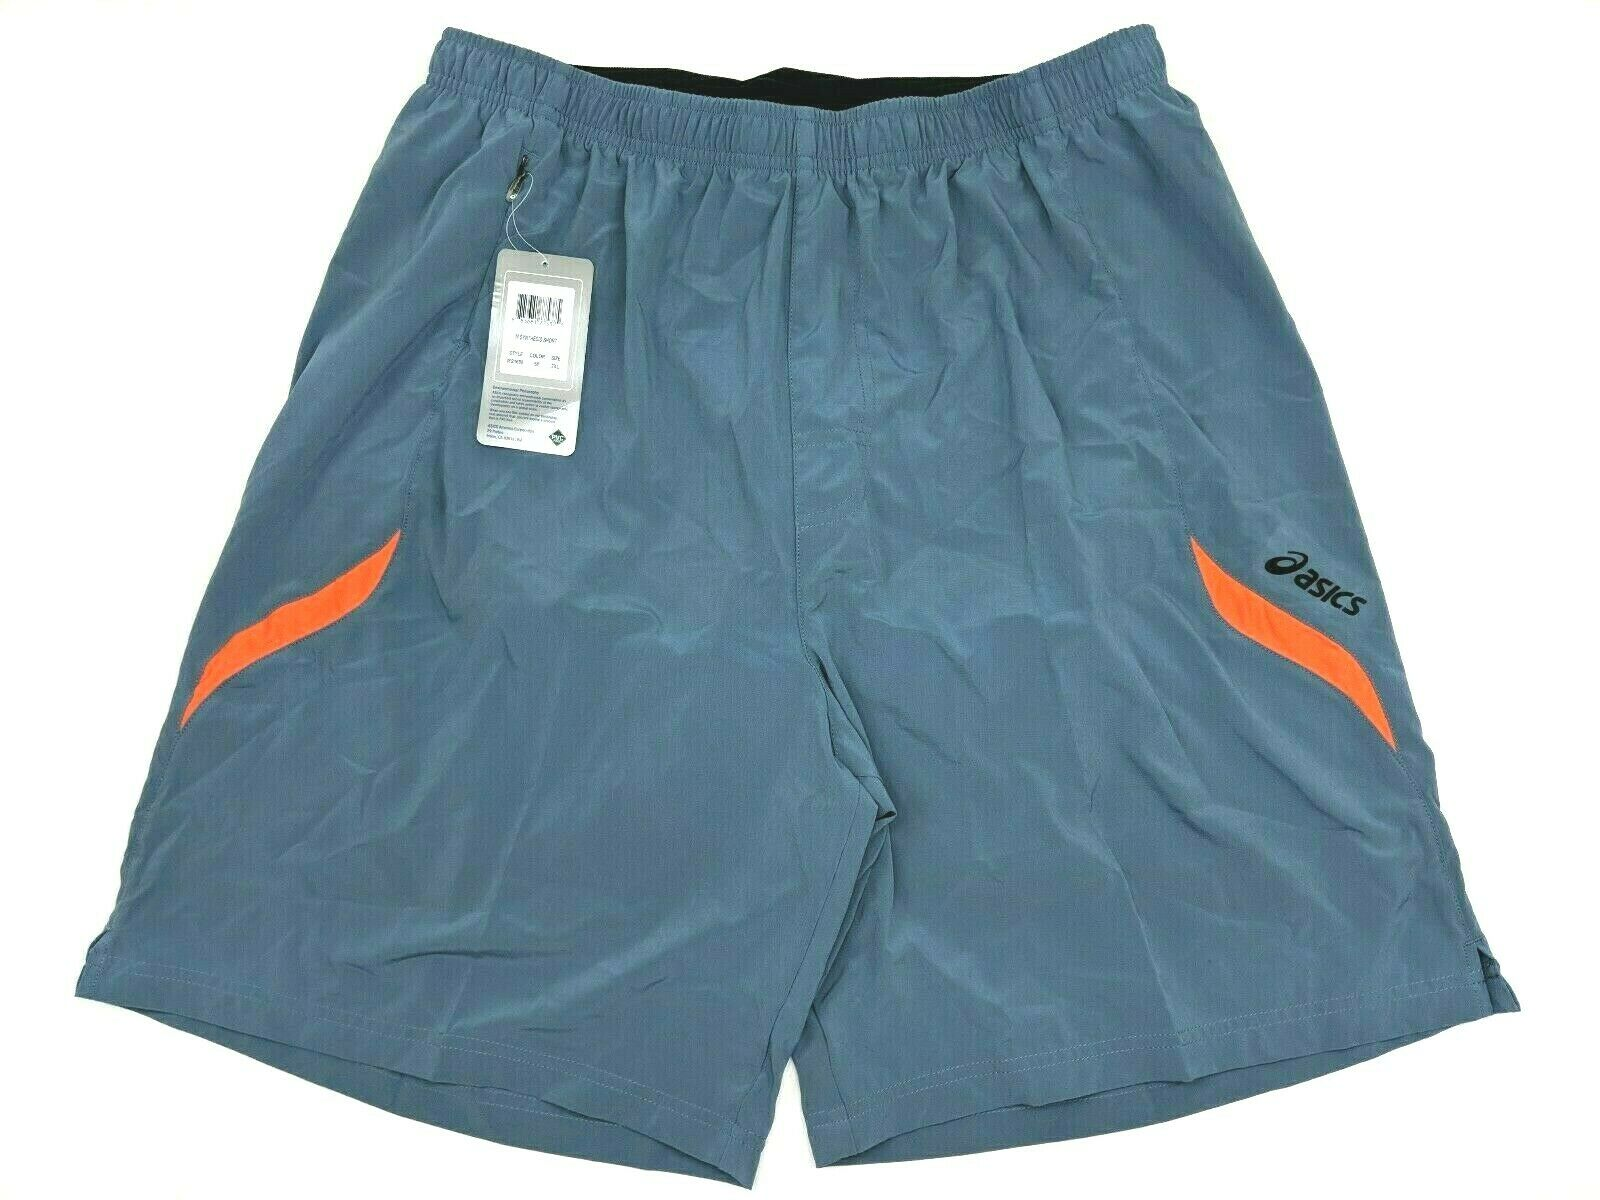 Asics Mens Synthesis Shorts Blue 3In1 4-Way Stretch Size 2XL